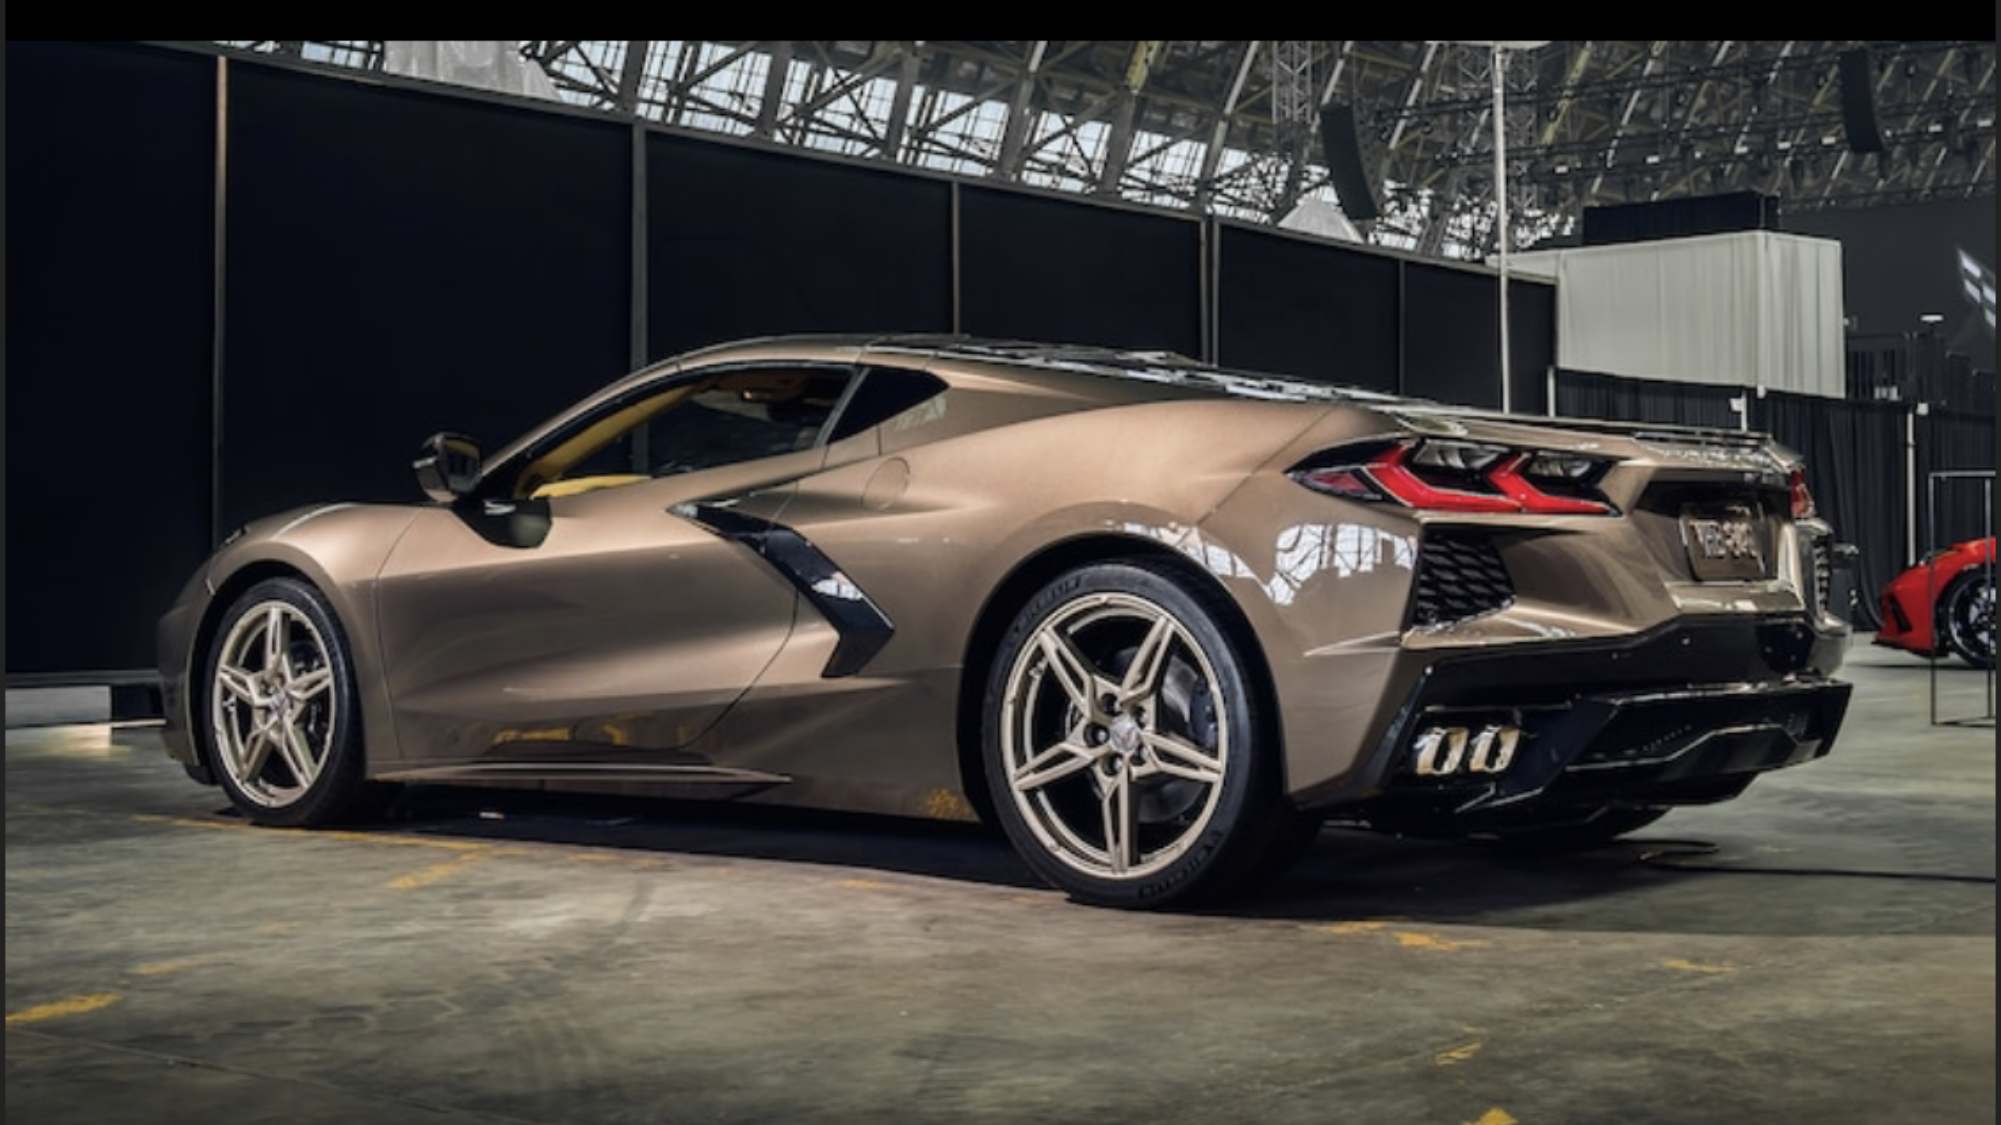 Pin By Whitney Robbins On 2020 C8 Corvette Stingray Corvette Convertible Chevrolet Corvette Corvette